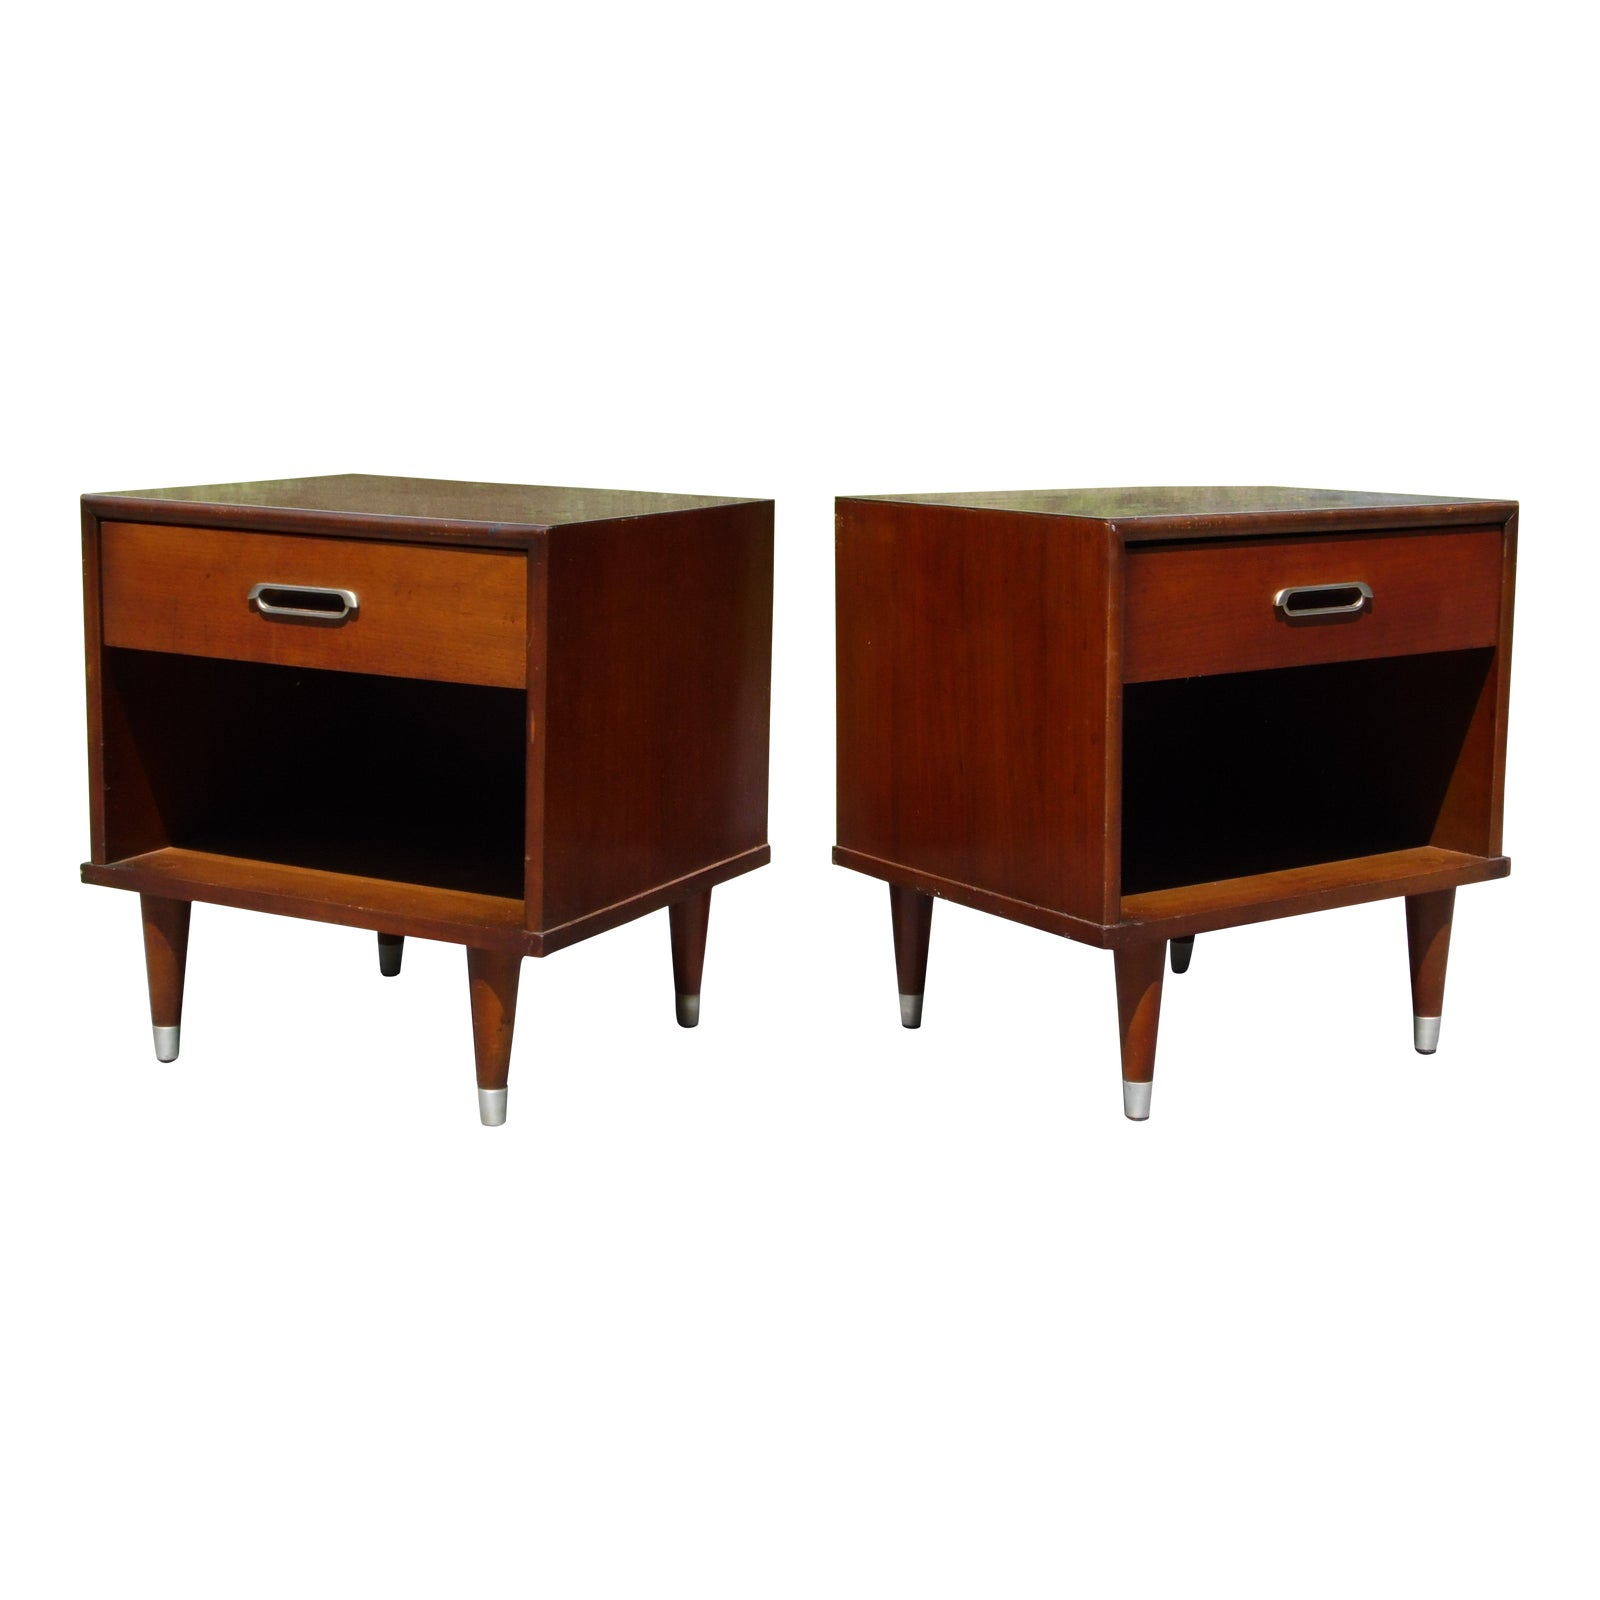 Vintage Pair Mid Century Modern Joerns Furniture Walnut